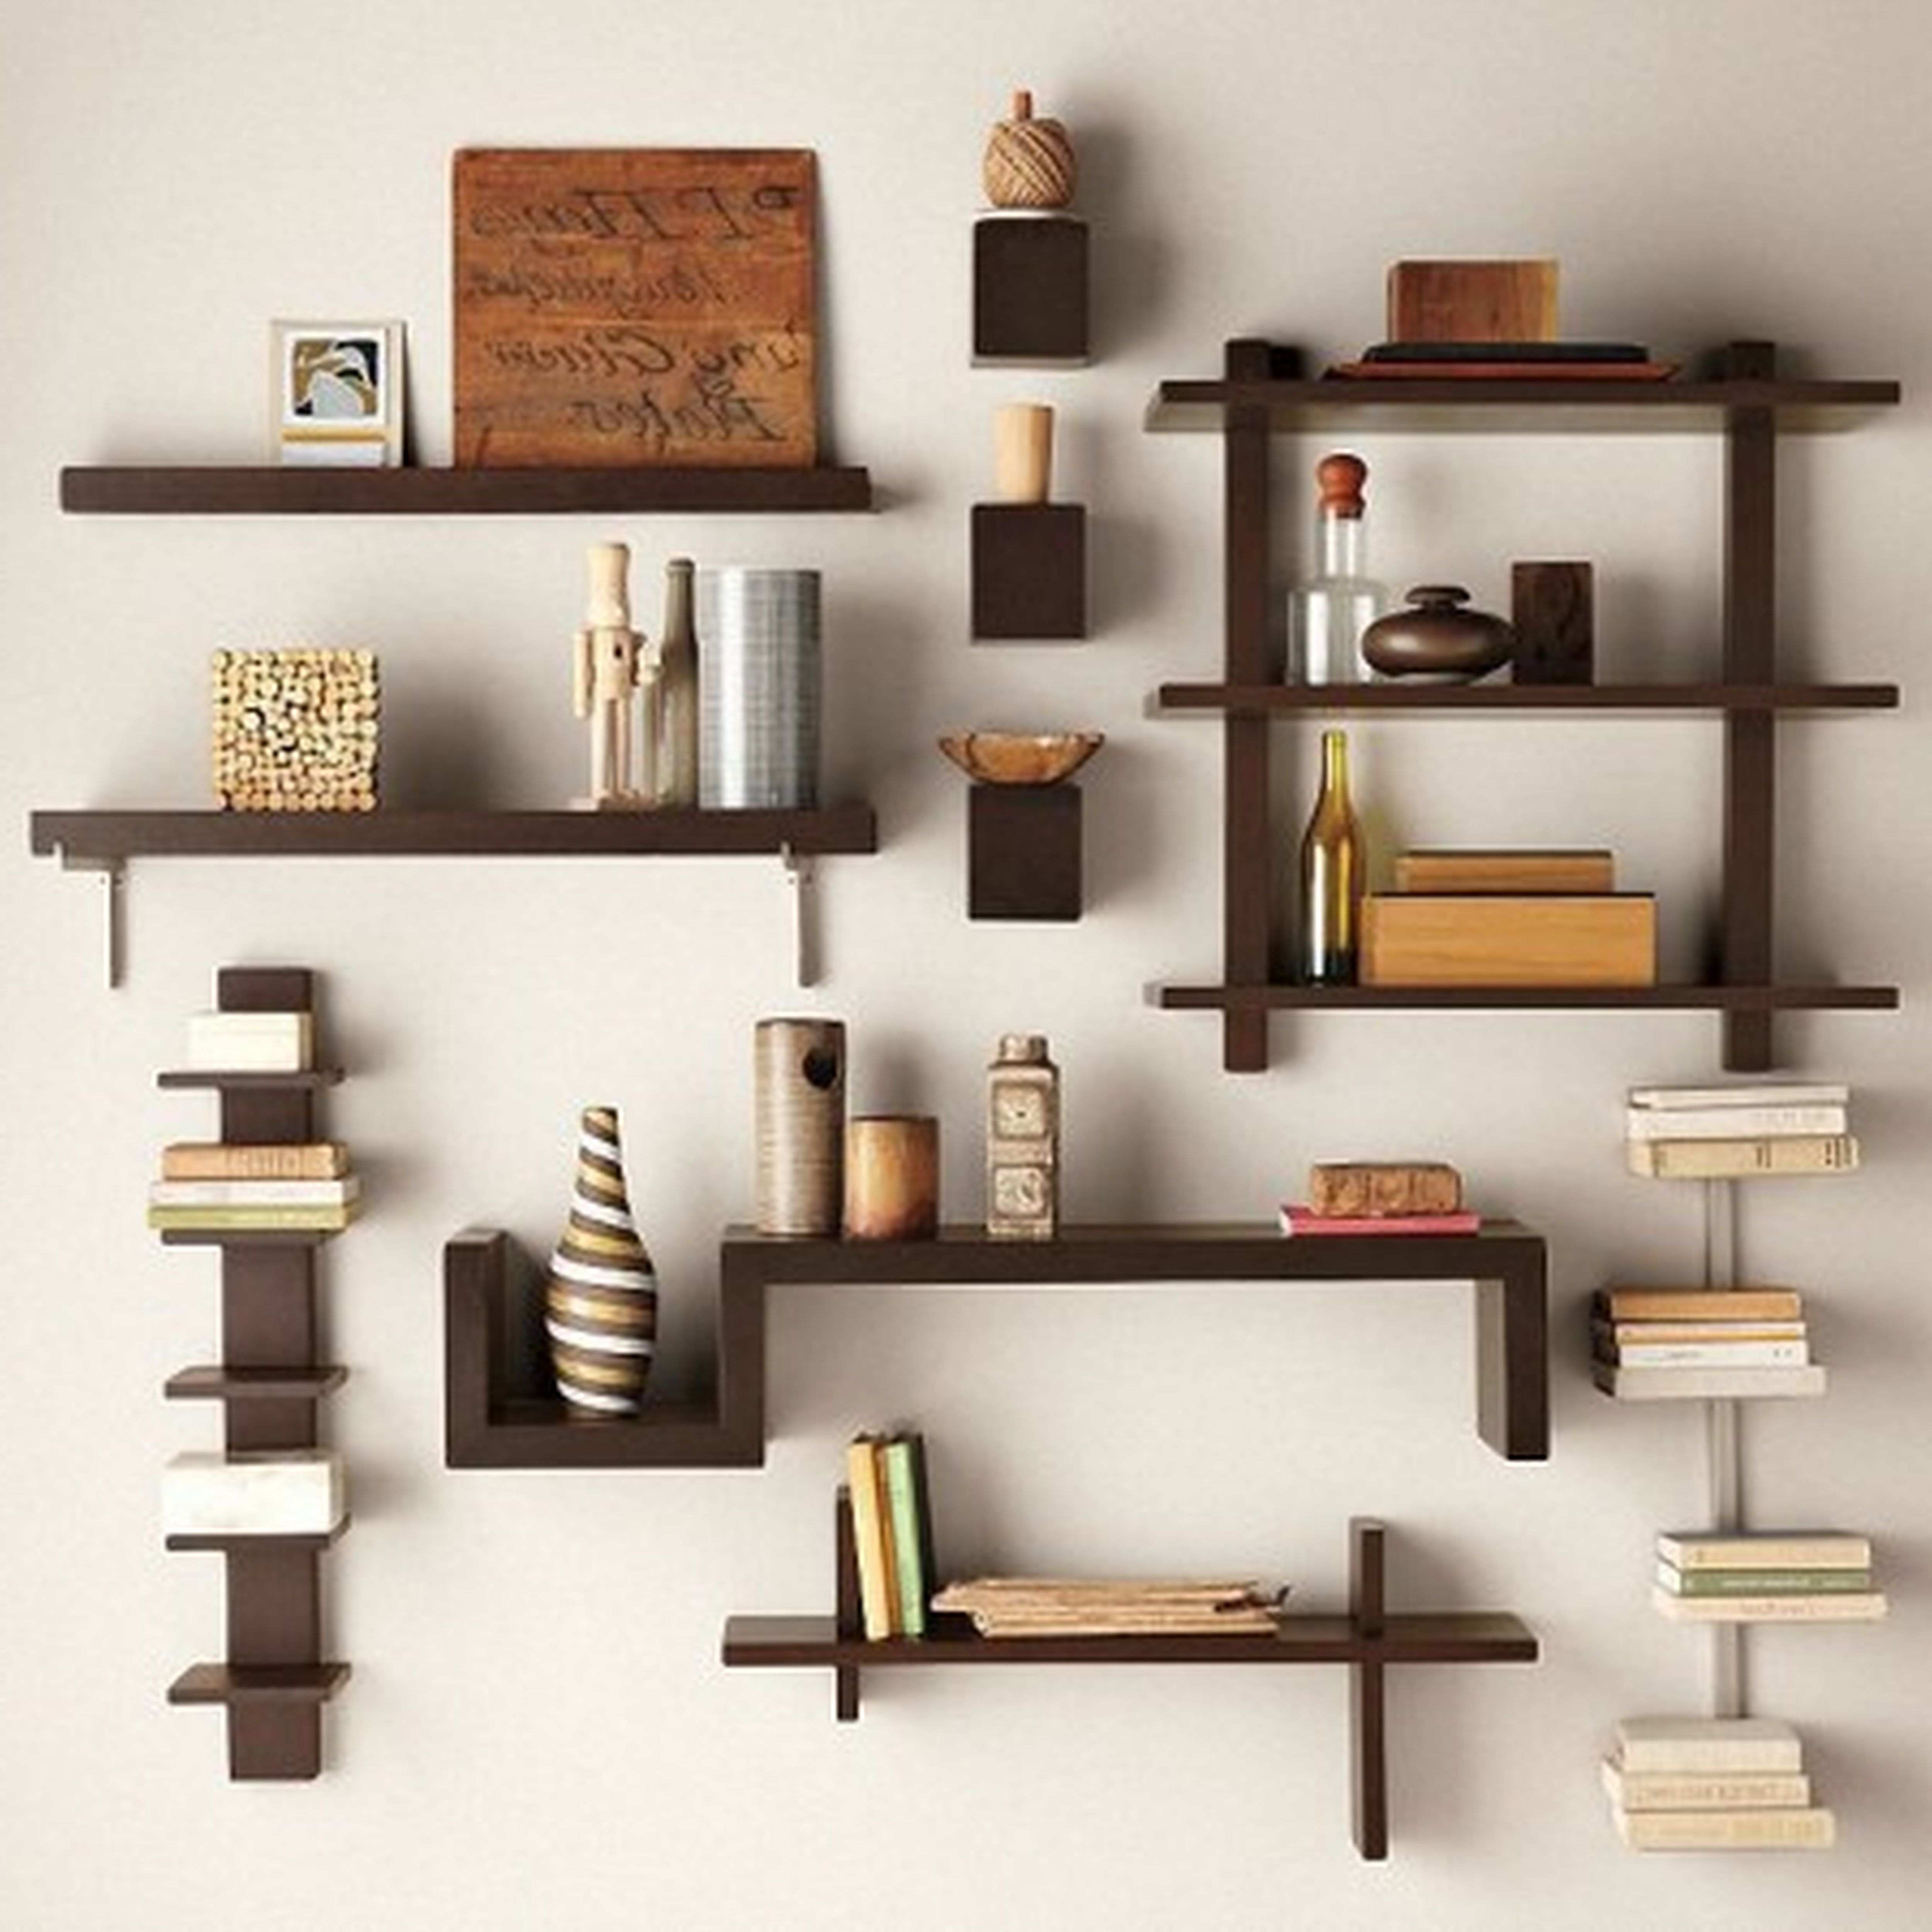 decorative shelves for living room. marvelous decorative shelving unit for living room  Decorate Rooms with Decorative Shelving Unit HomesFeed